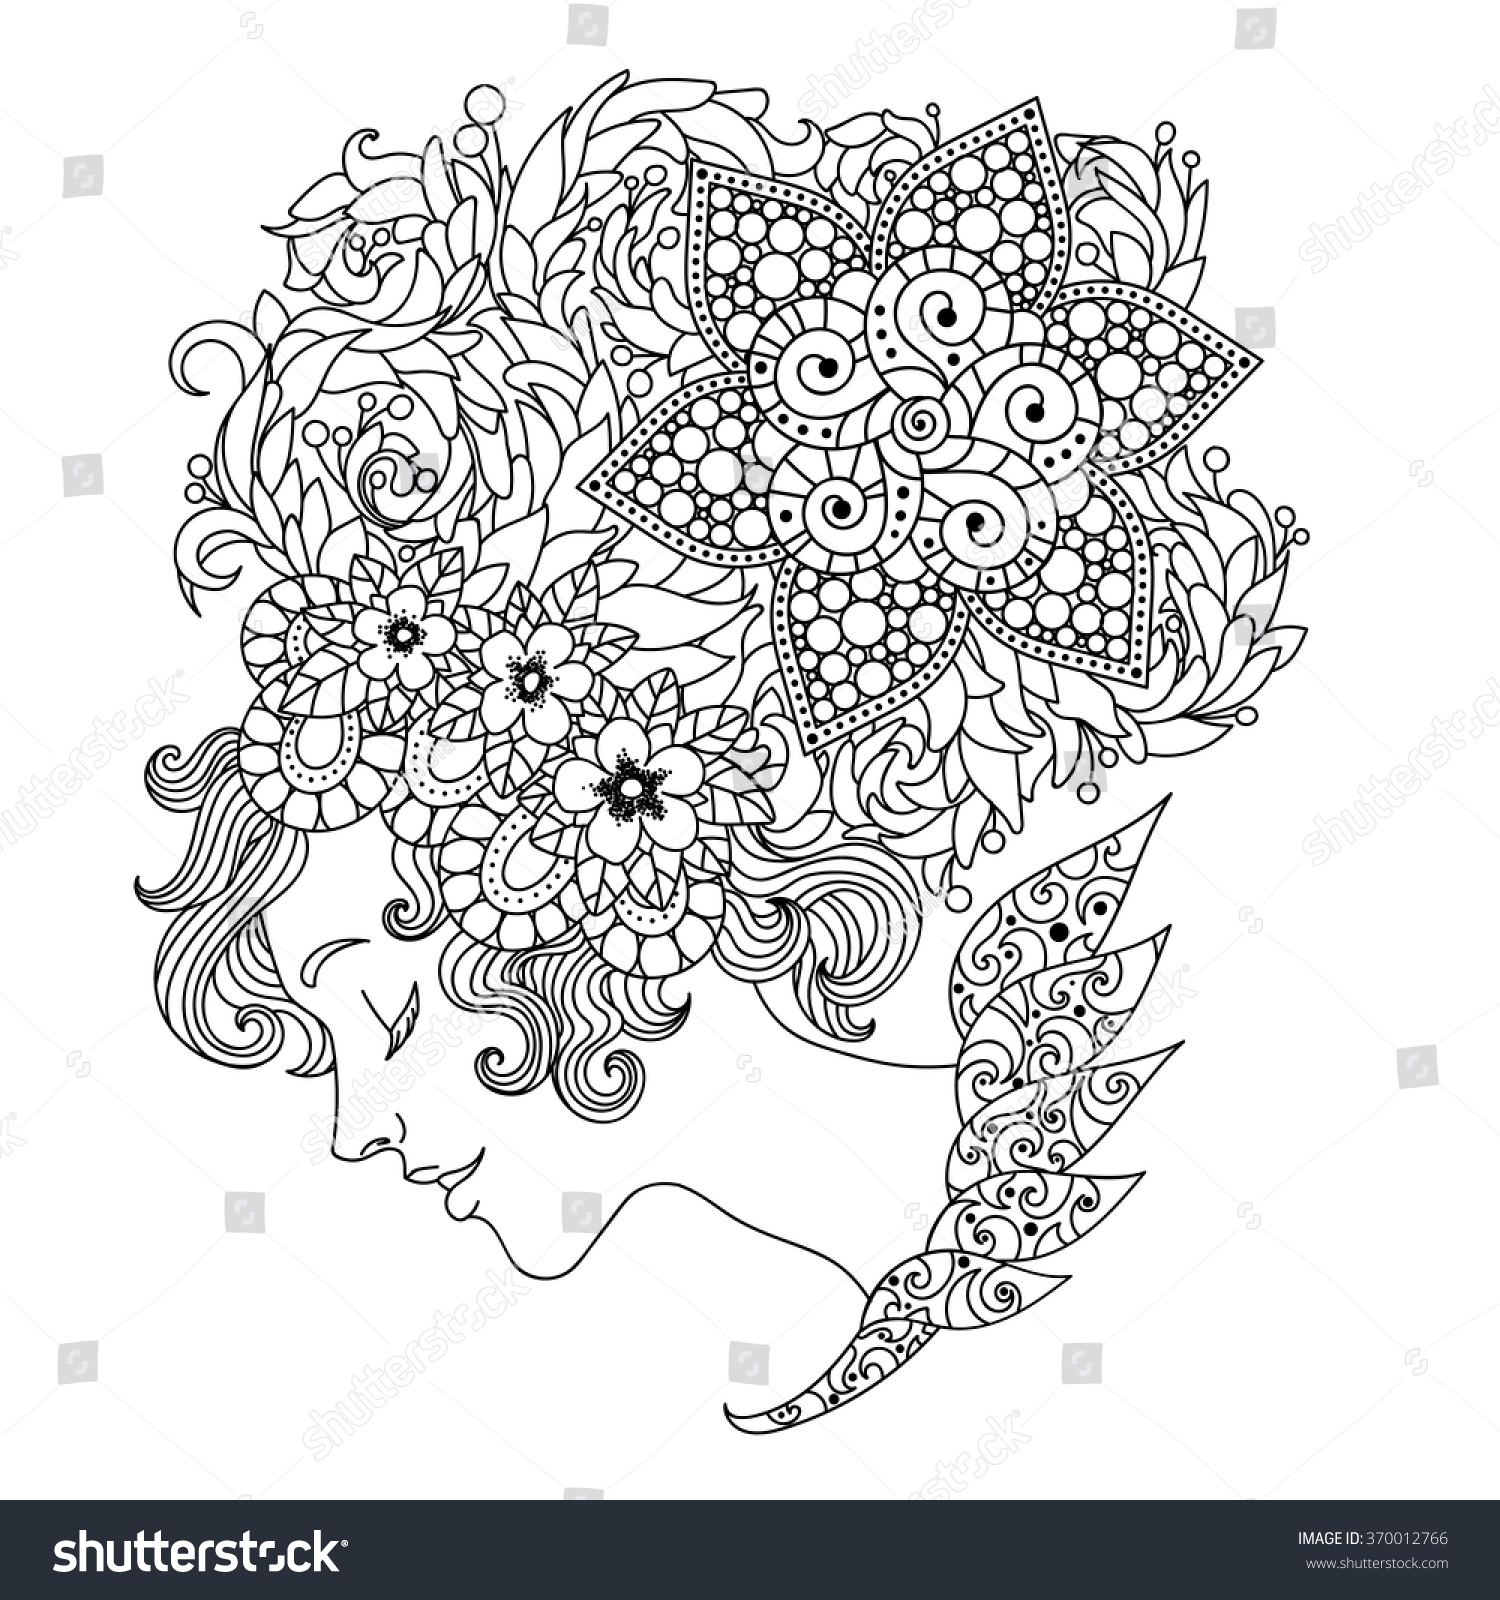 Coloring book for girl - Beautiful Girl With Flowers Illustration For The Coloring Book For Adults Coloring Page